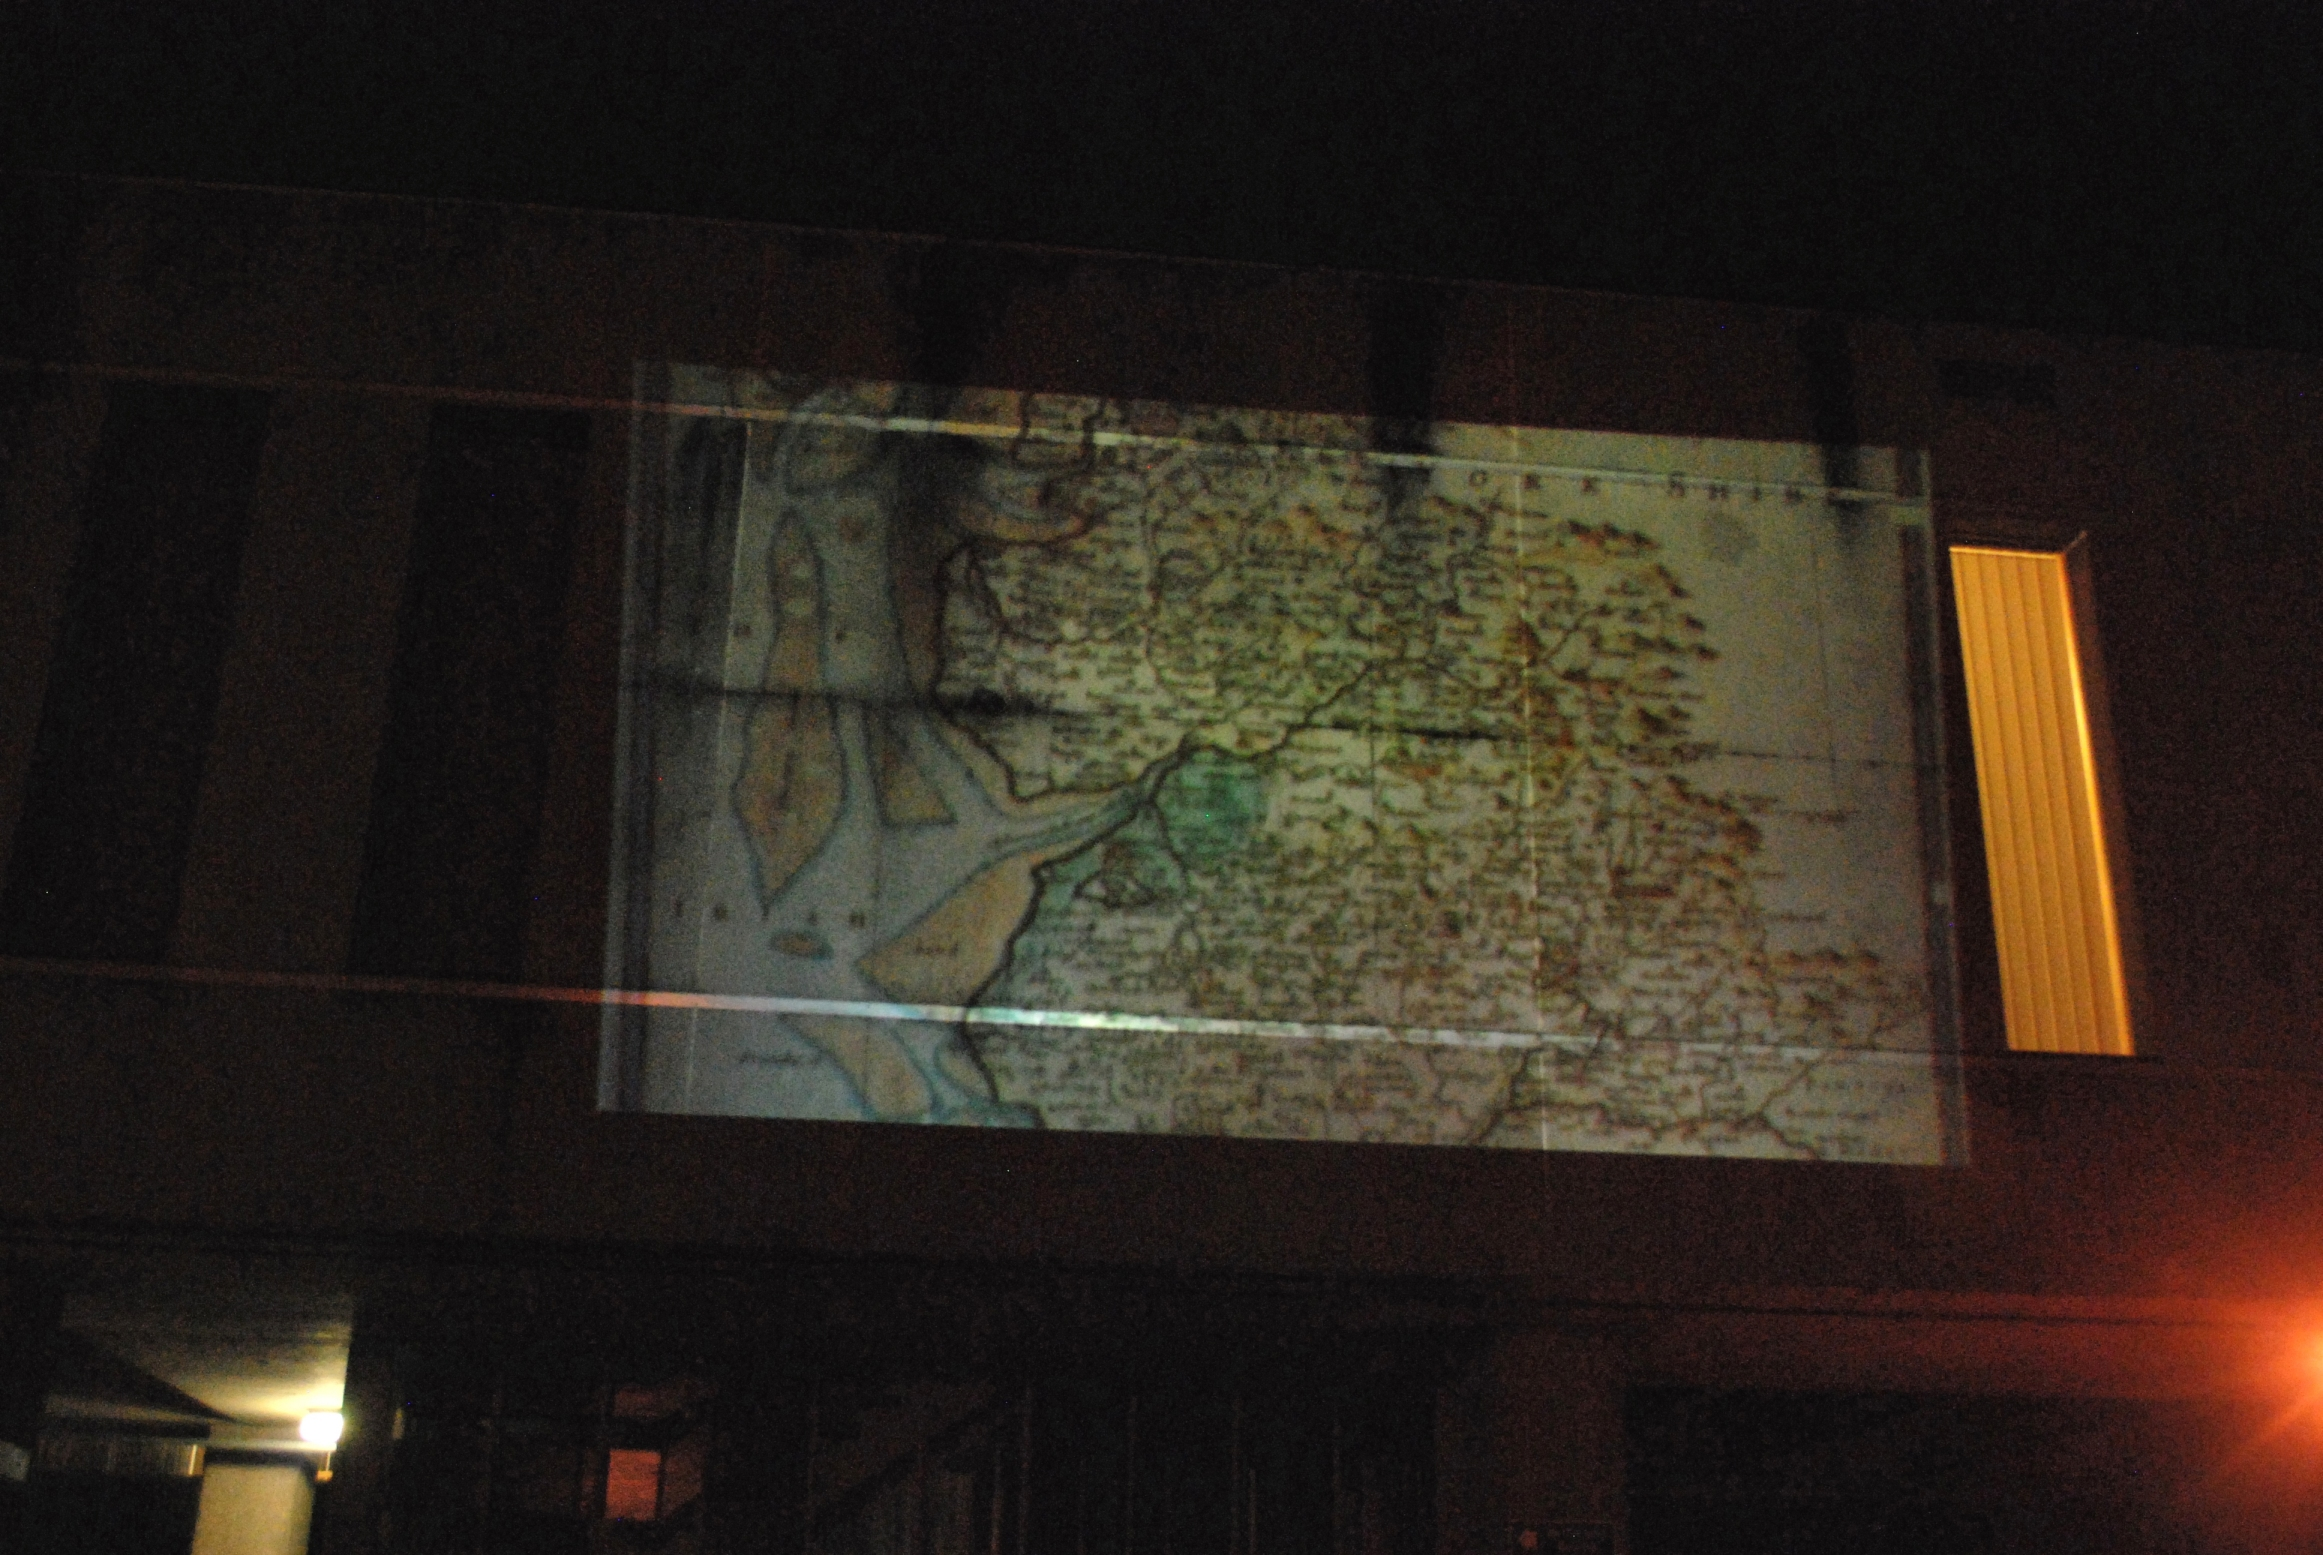 Wall Projection 5